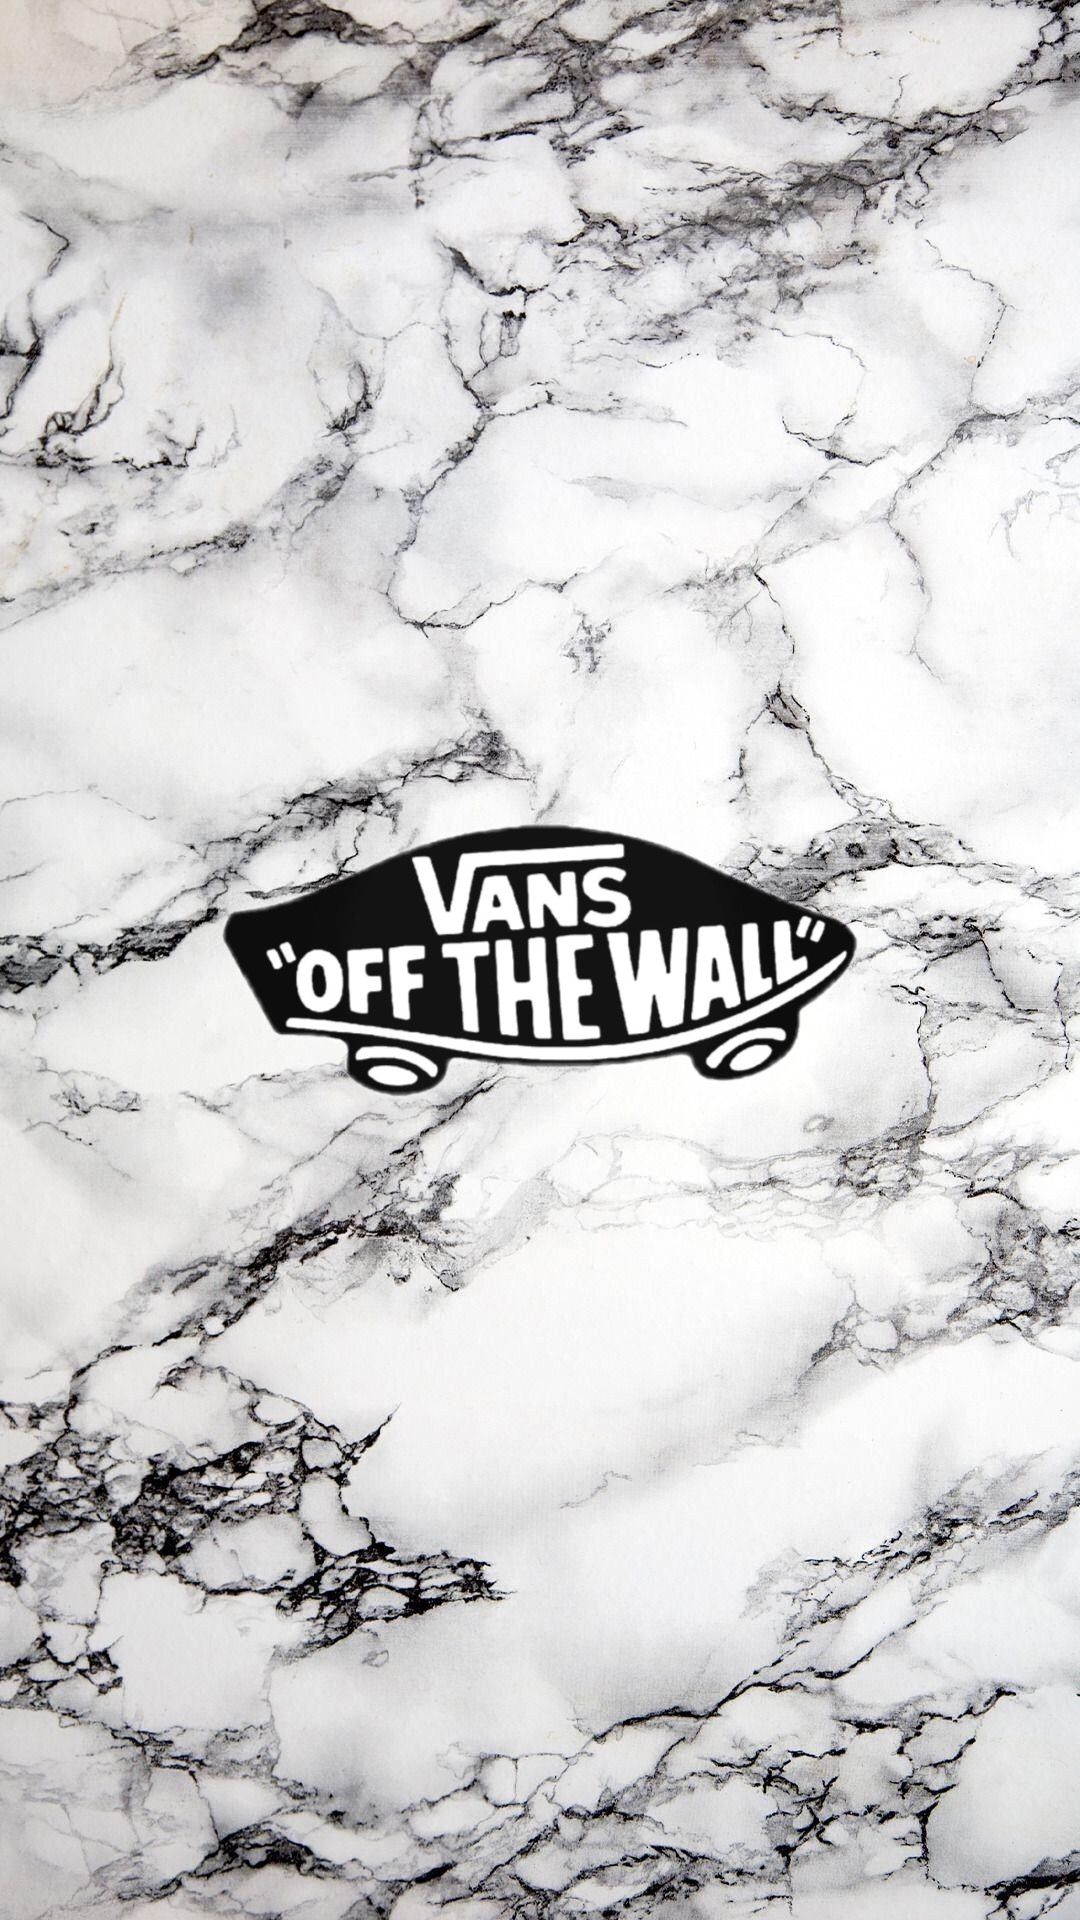 Pin By Delta Lindley On Rainbow Wallpaper Cool Vans Wallpapers Vans Off The Wall Iphone Wallpaper Vans Coolest wallpaper wall pictures